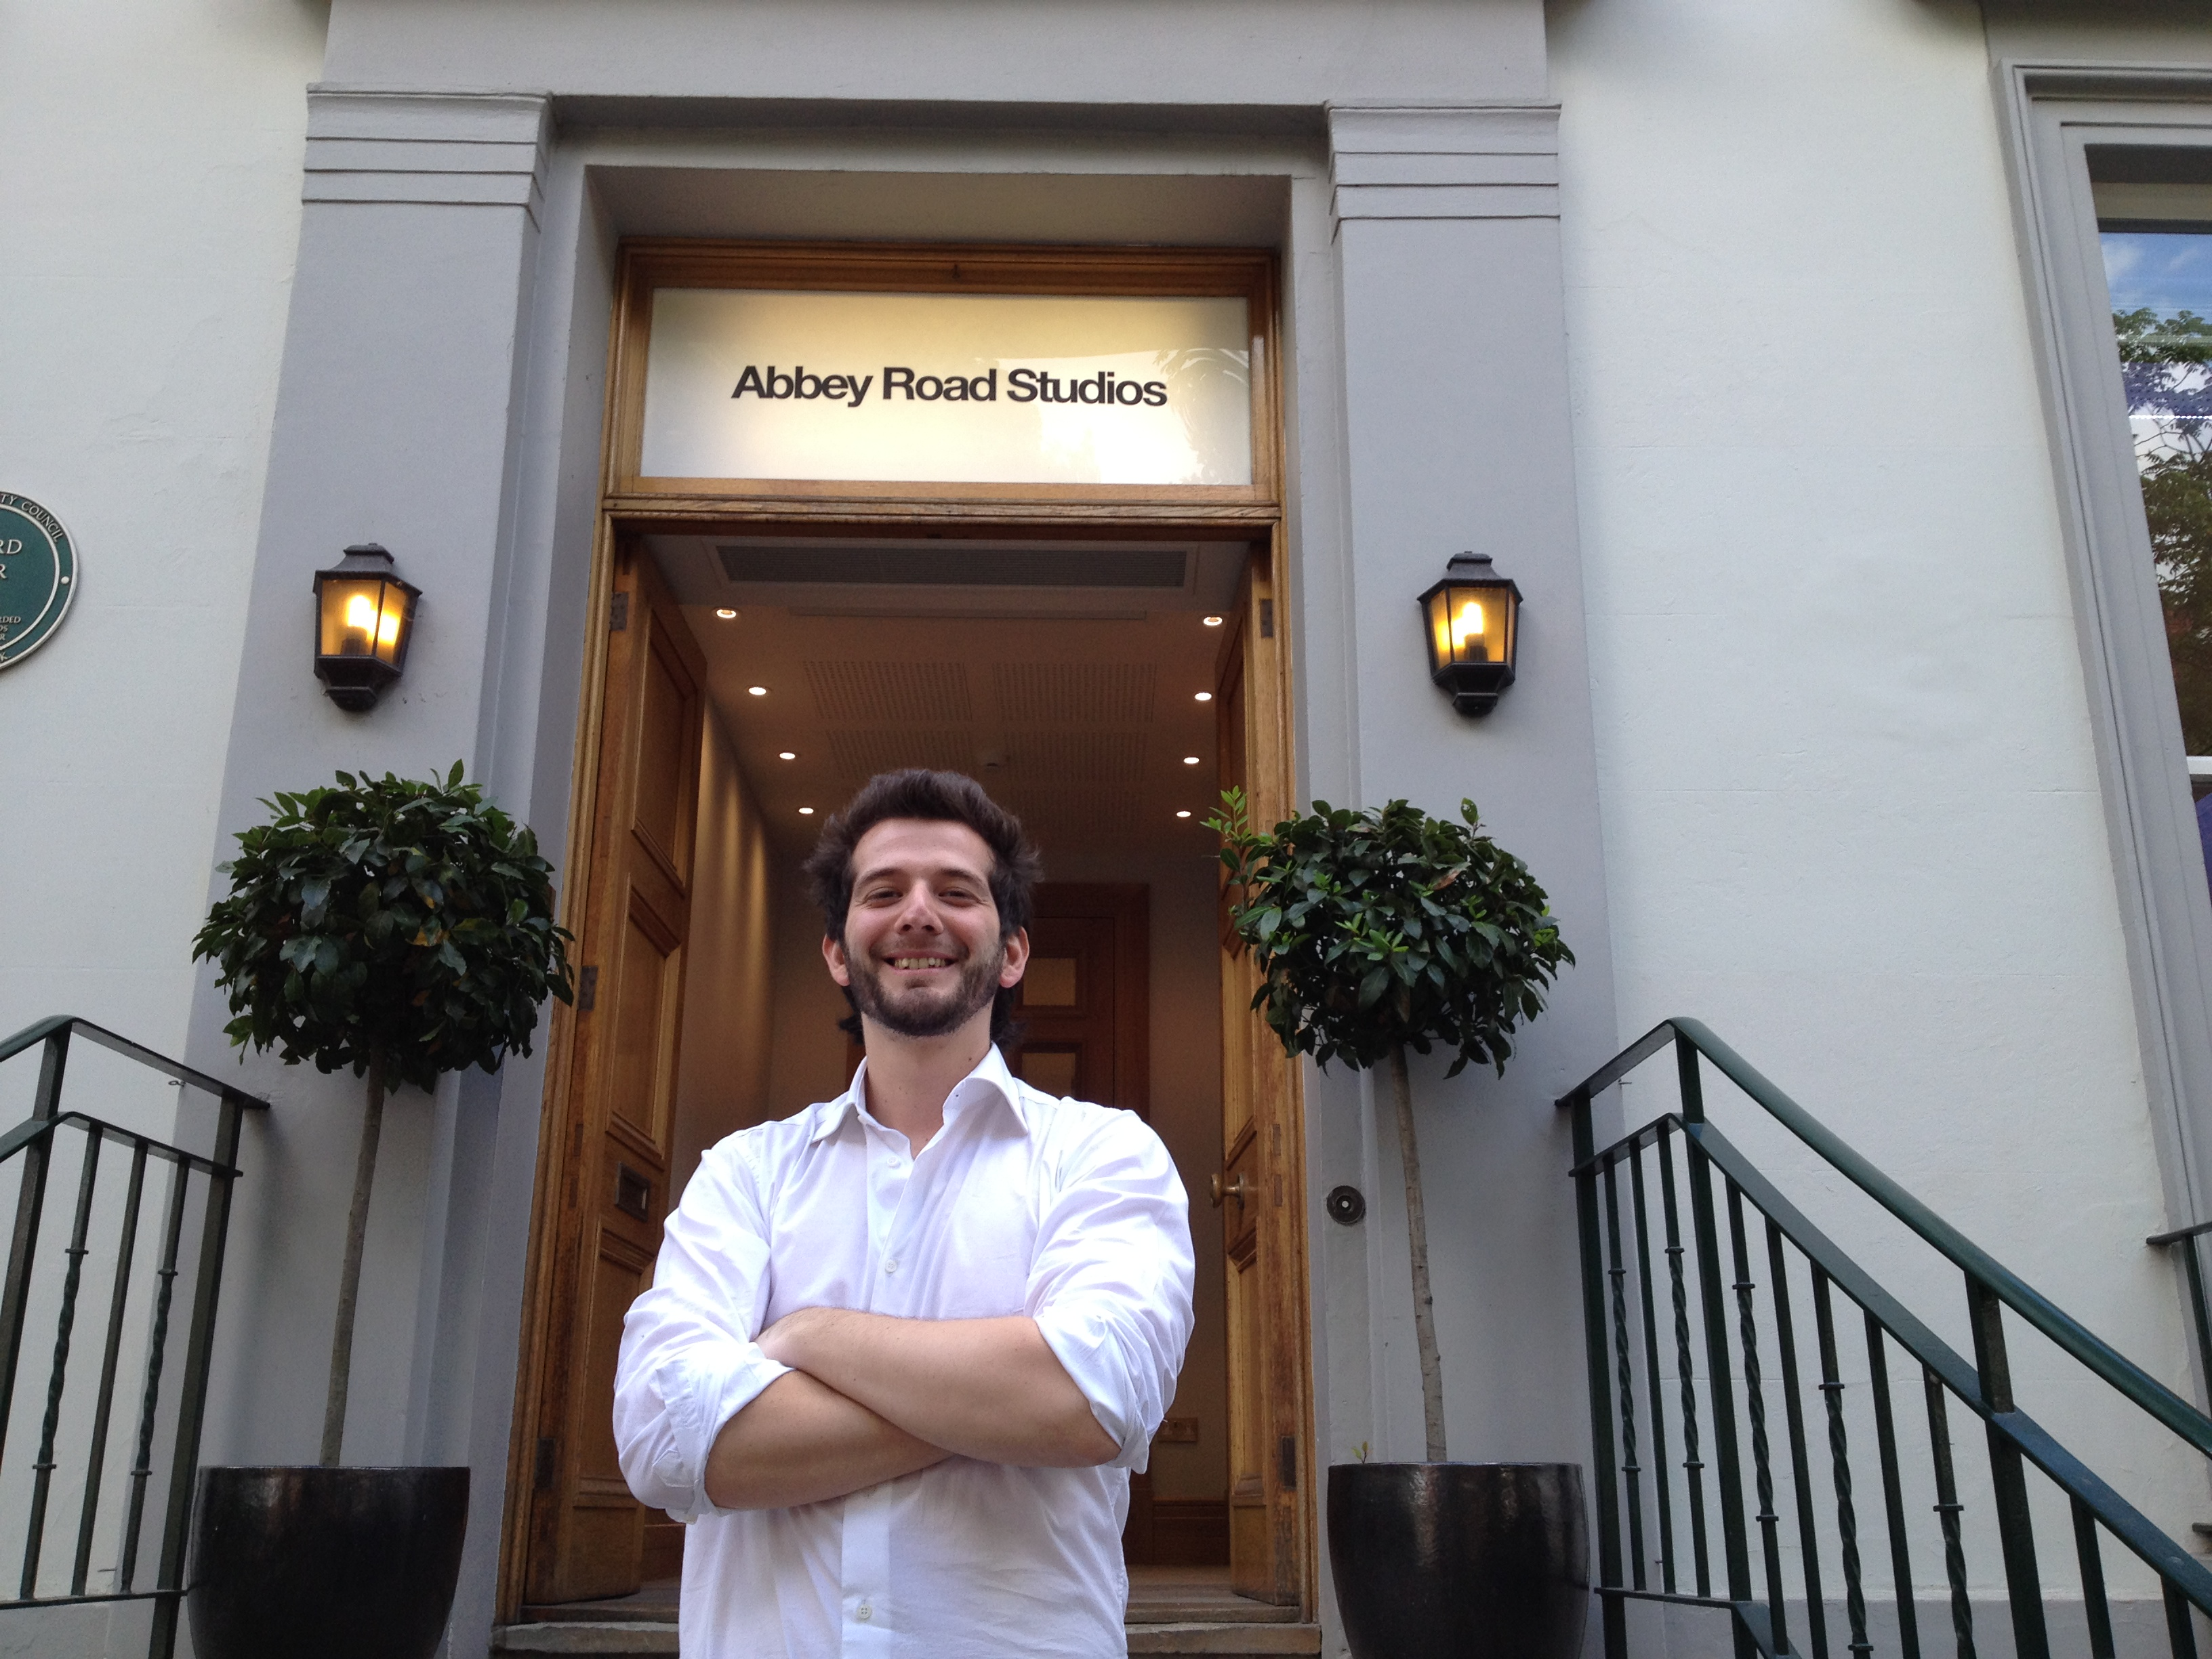 Abbey Road Studios - Ready to get in